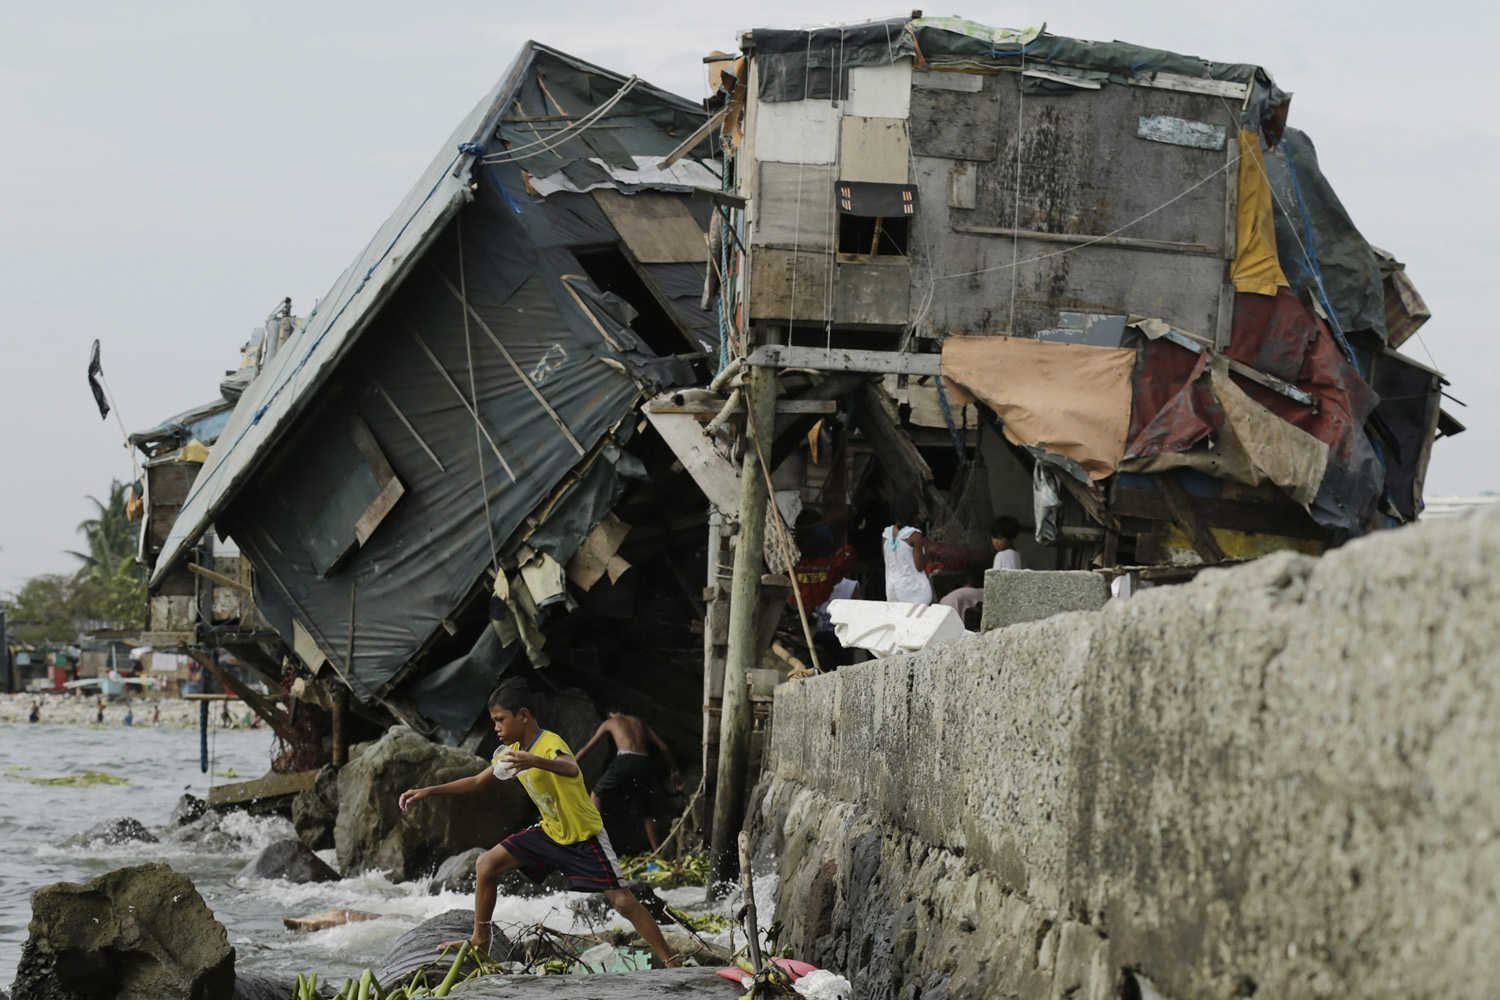 Jul. 18, 2014. A Filipino teen walks past a damaged house in Manila, Philippines, after strong winds and rain brought by Typhoon Rammasun  killed 60 people and left nearly two million in  the capital and eastern provinces  without power.